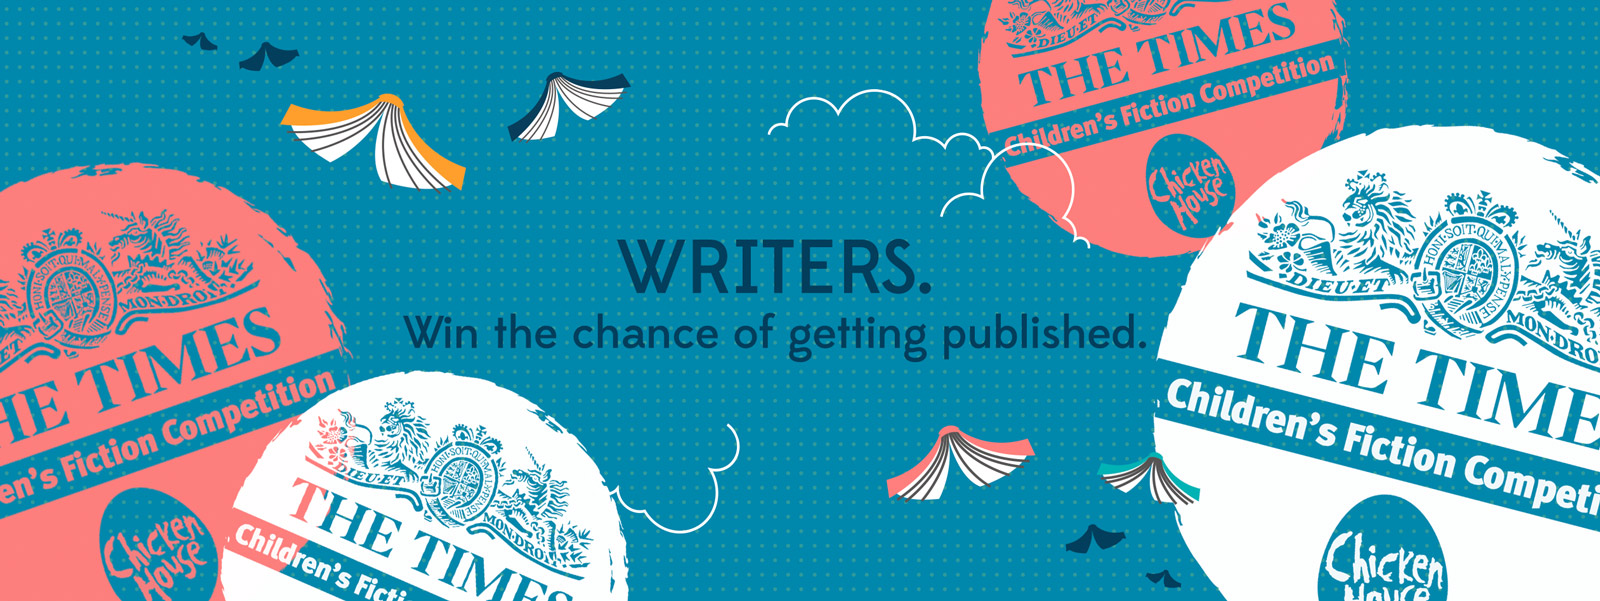 Writers, win the chance of getting published!